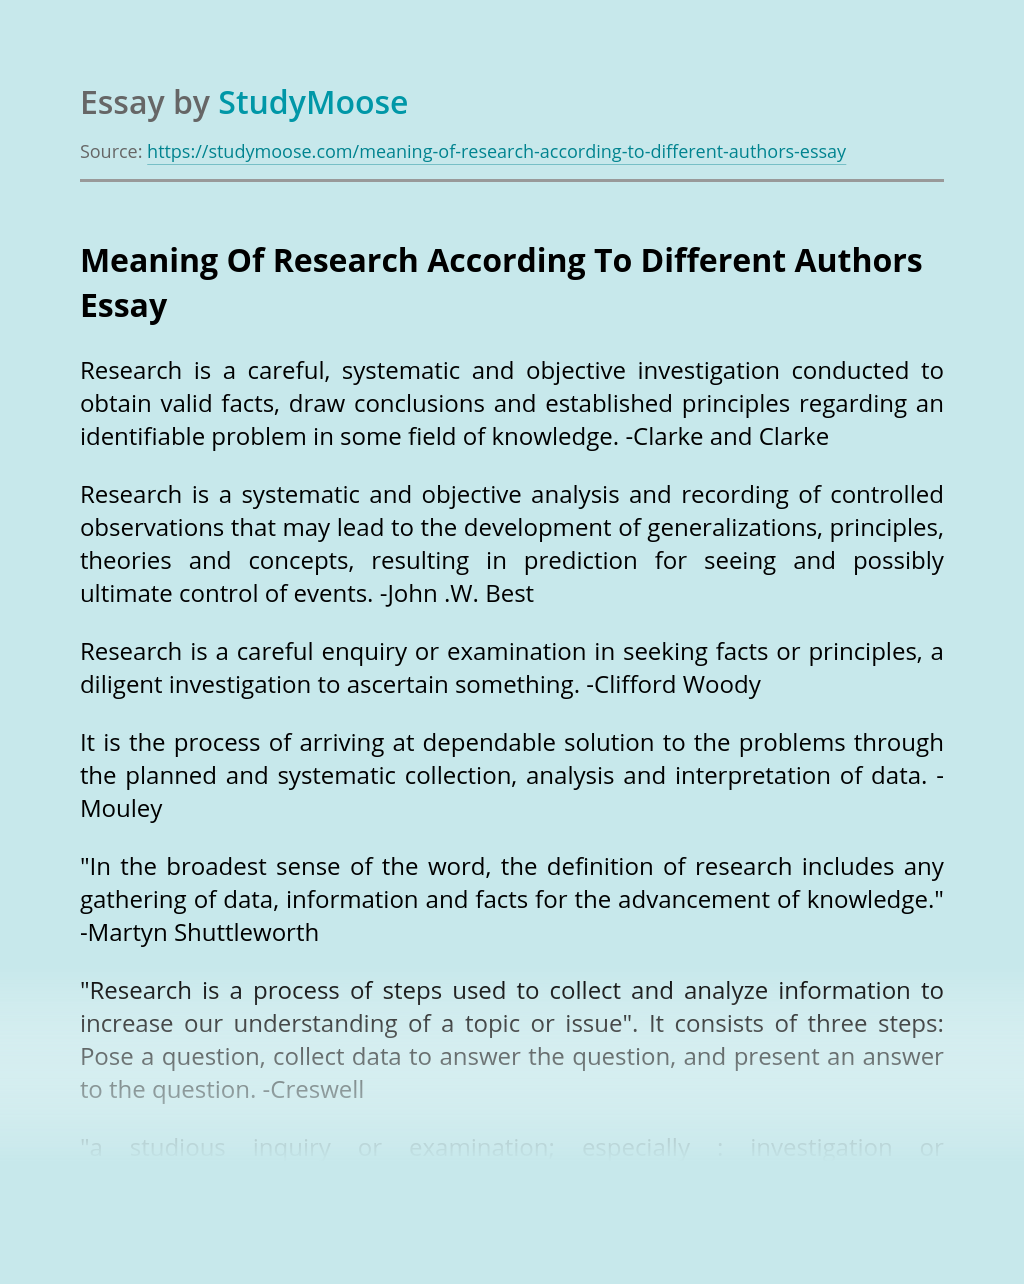 Meaning Of Research According To Different Authors